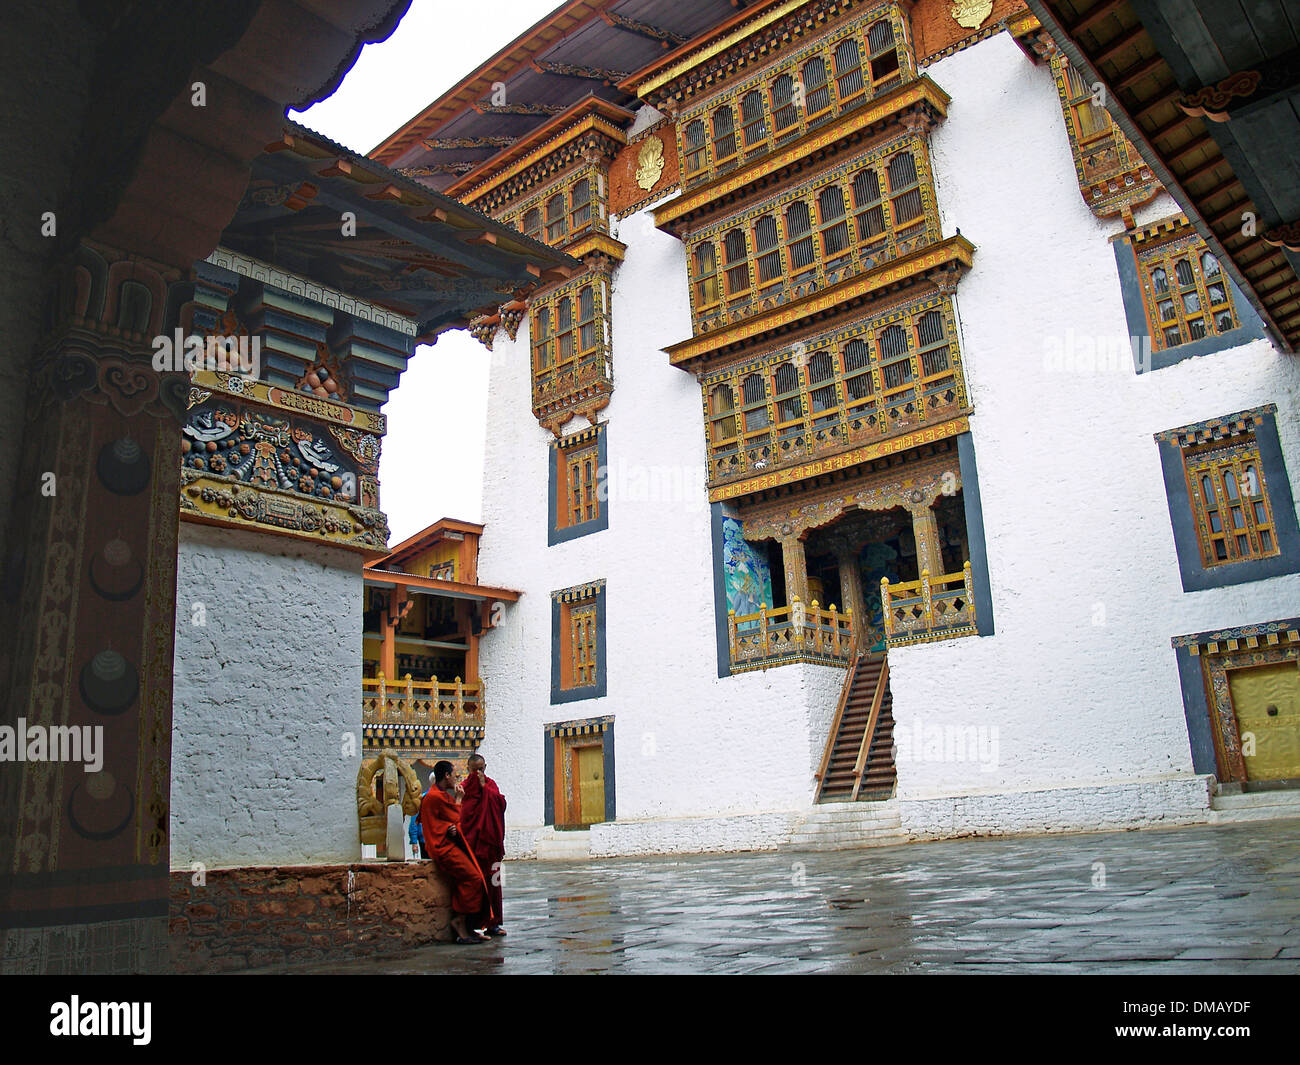 Two monks in the interior coutyard of the Punakha Dzong,Bhutan Stock Photo